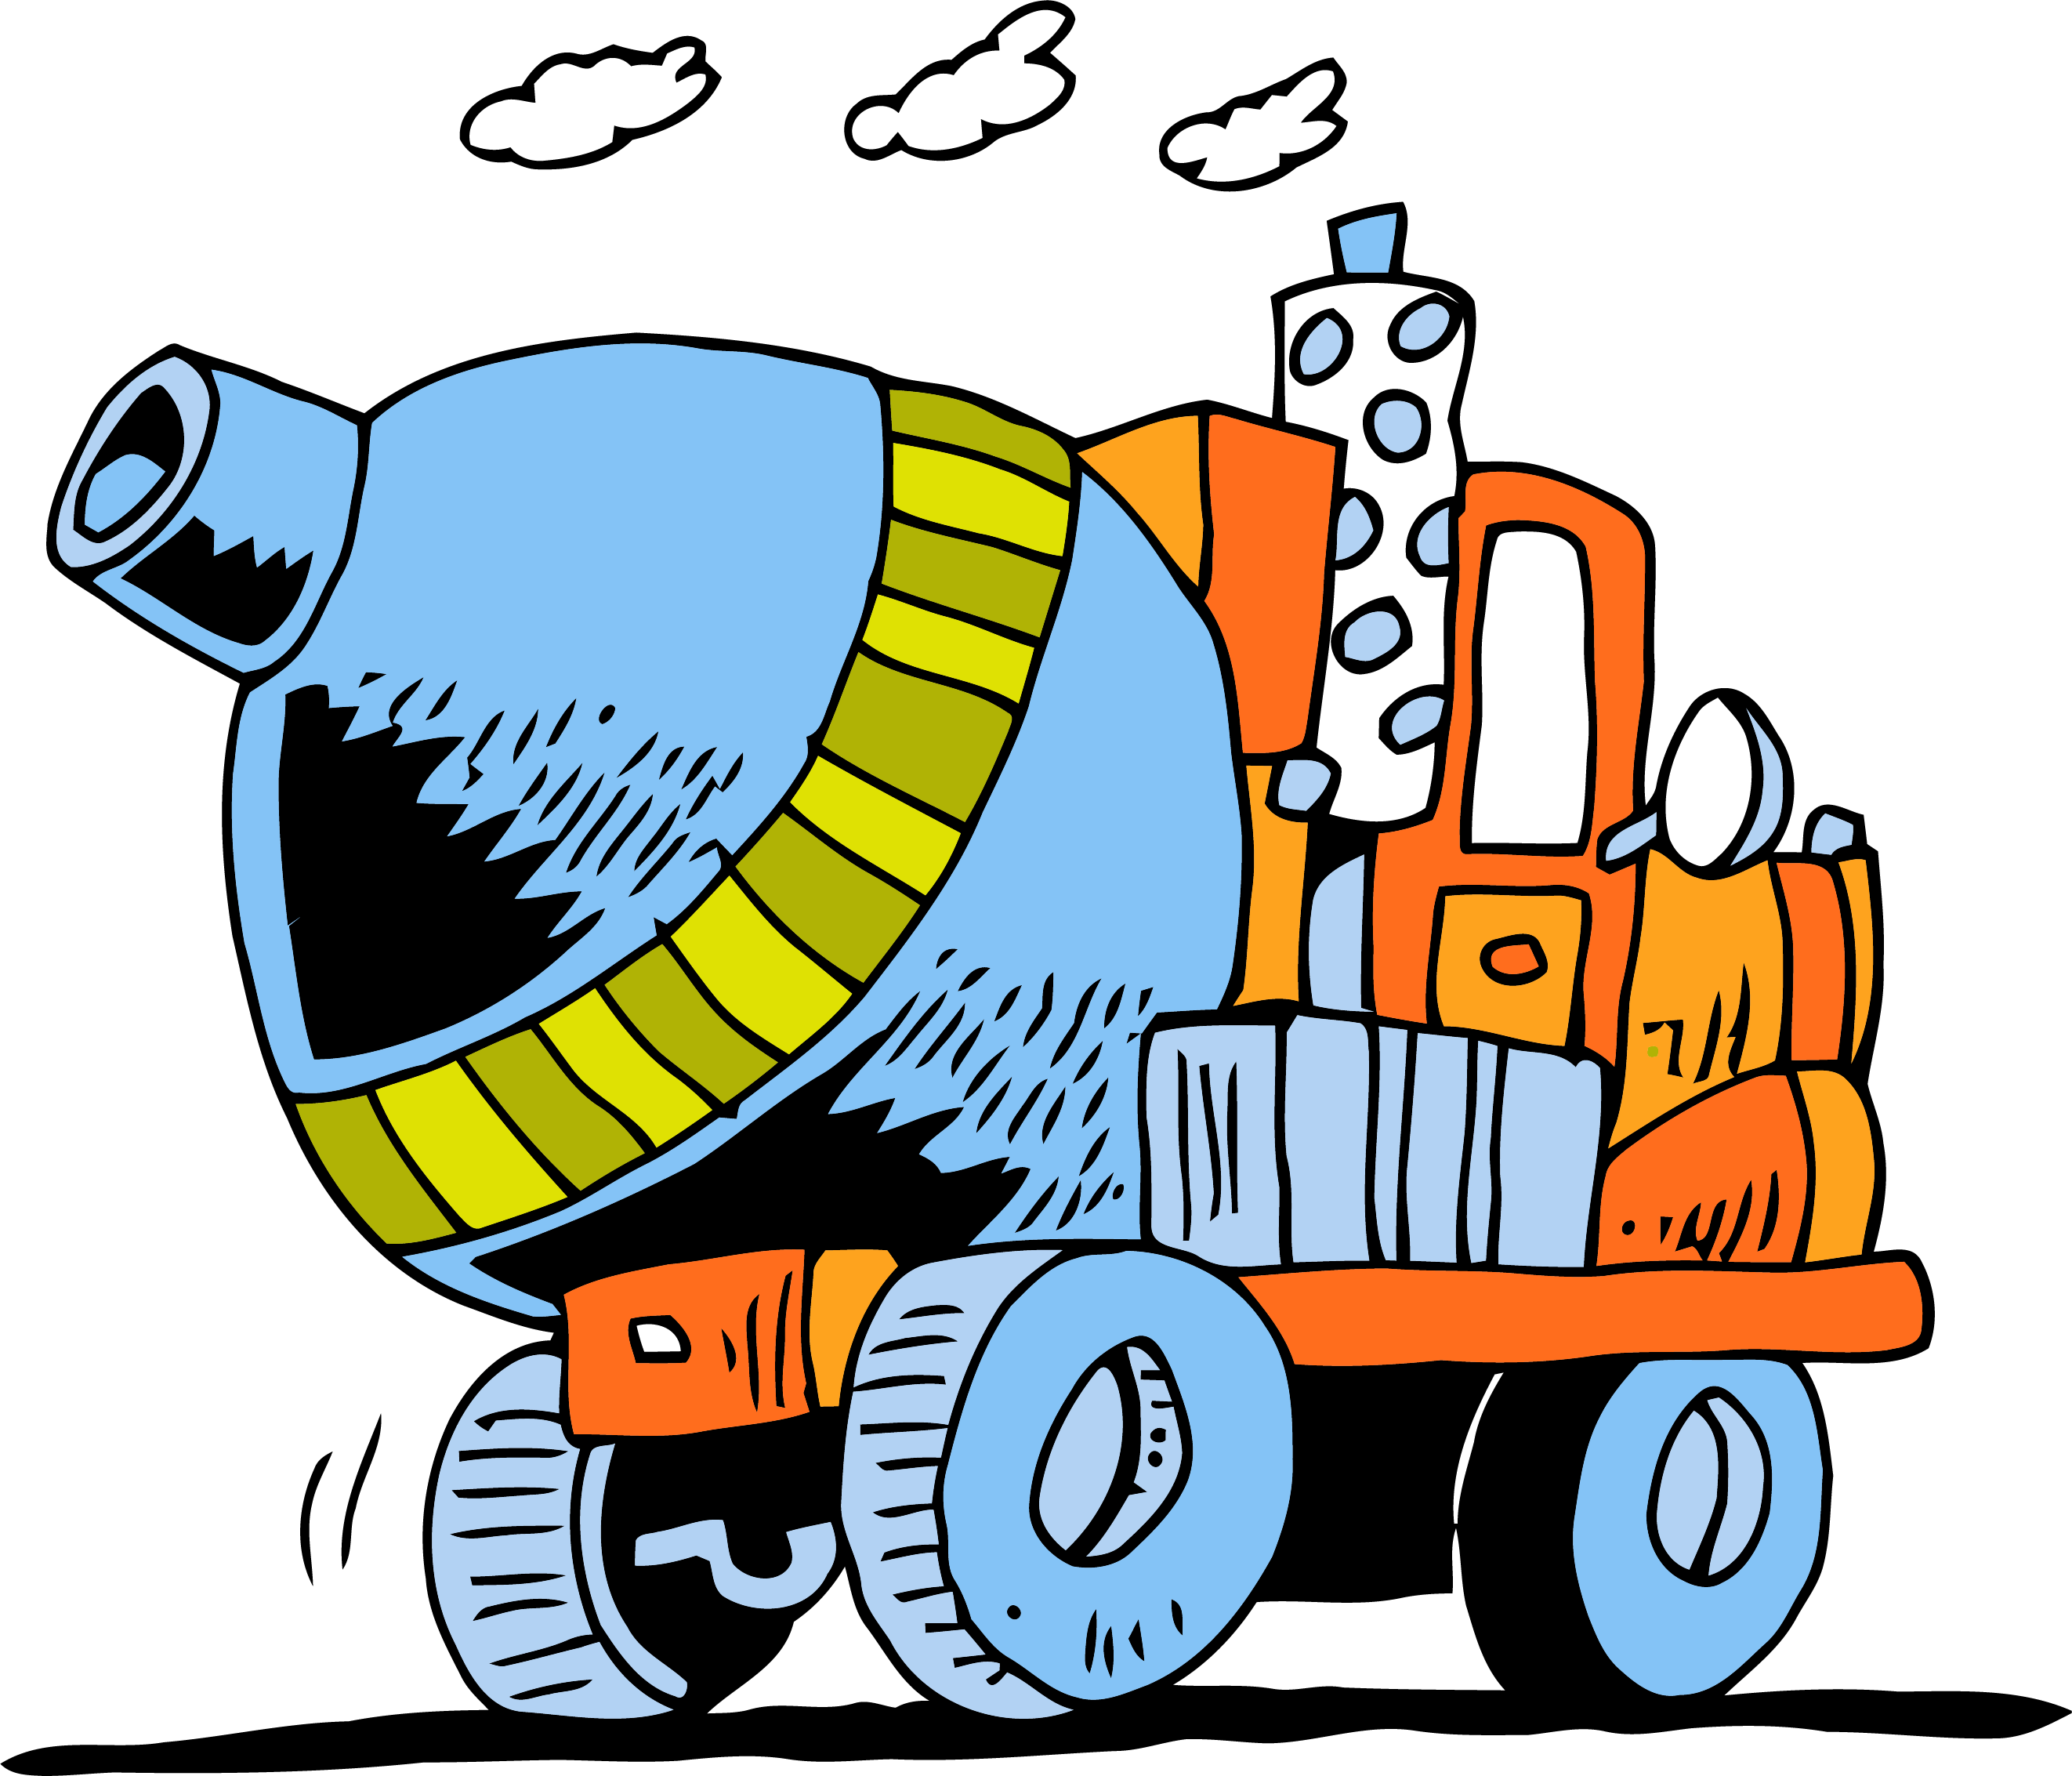 Cement Truck Going Clipart Png | Clipartly.com download